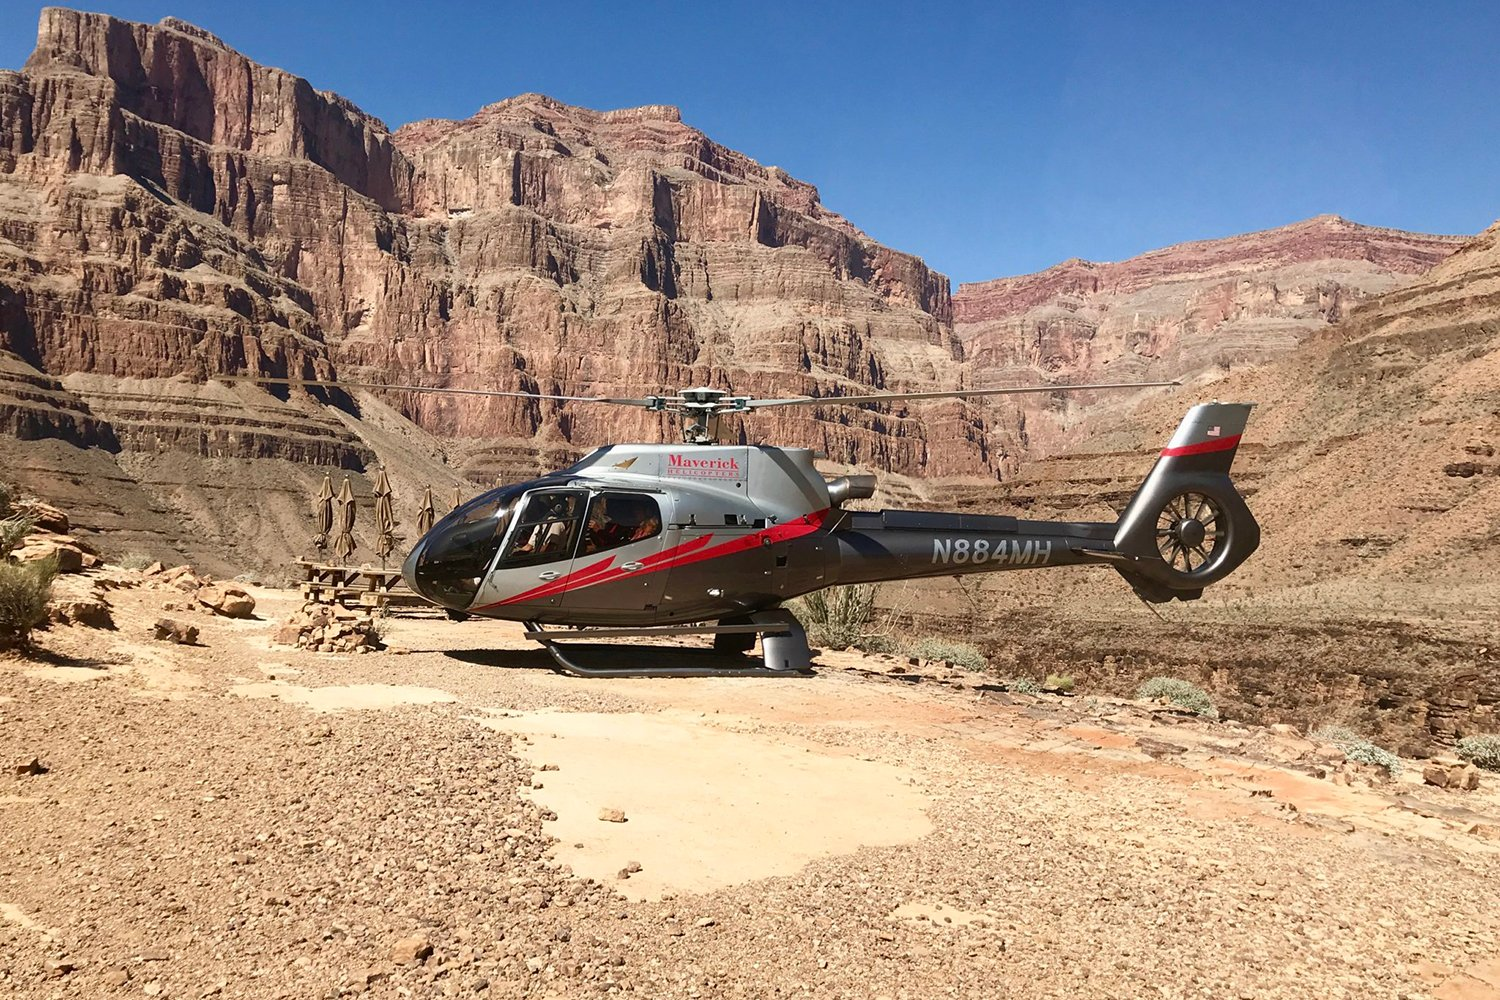 Grand Canyon tour with Maverick Helicopters